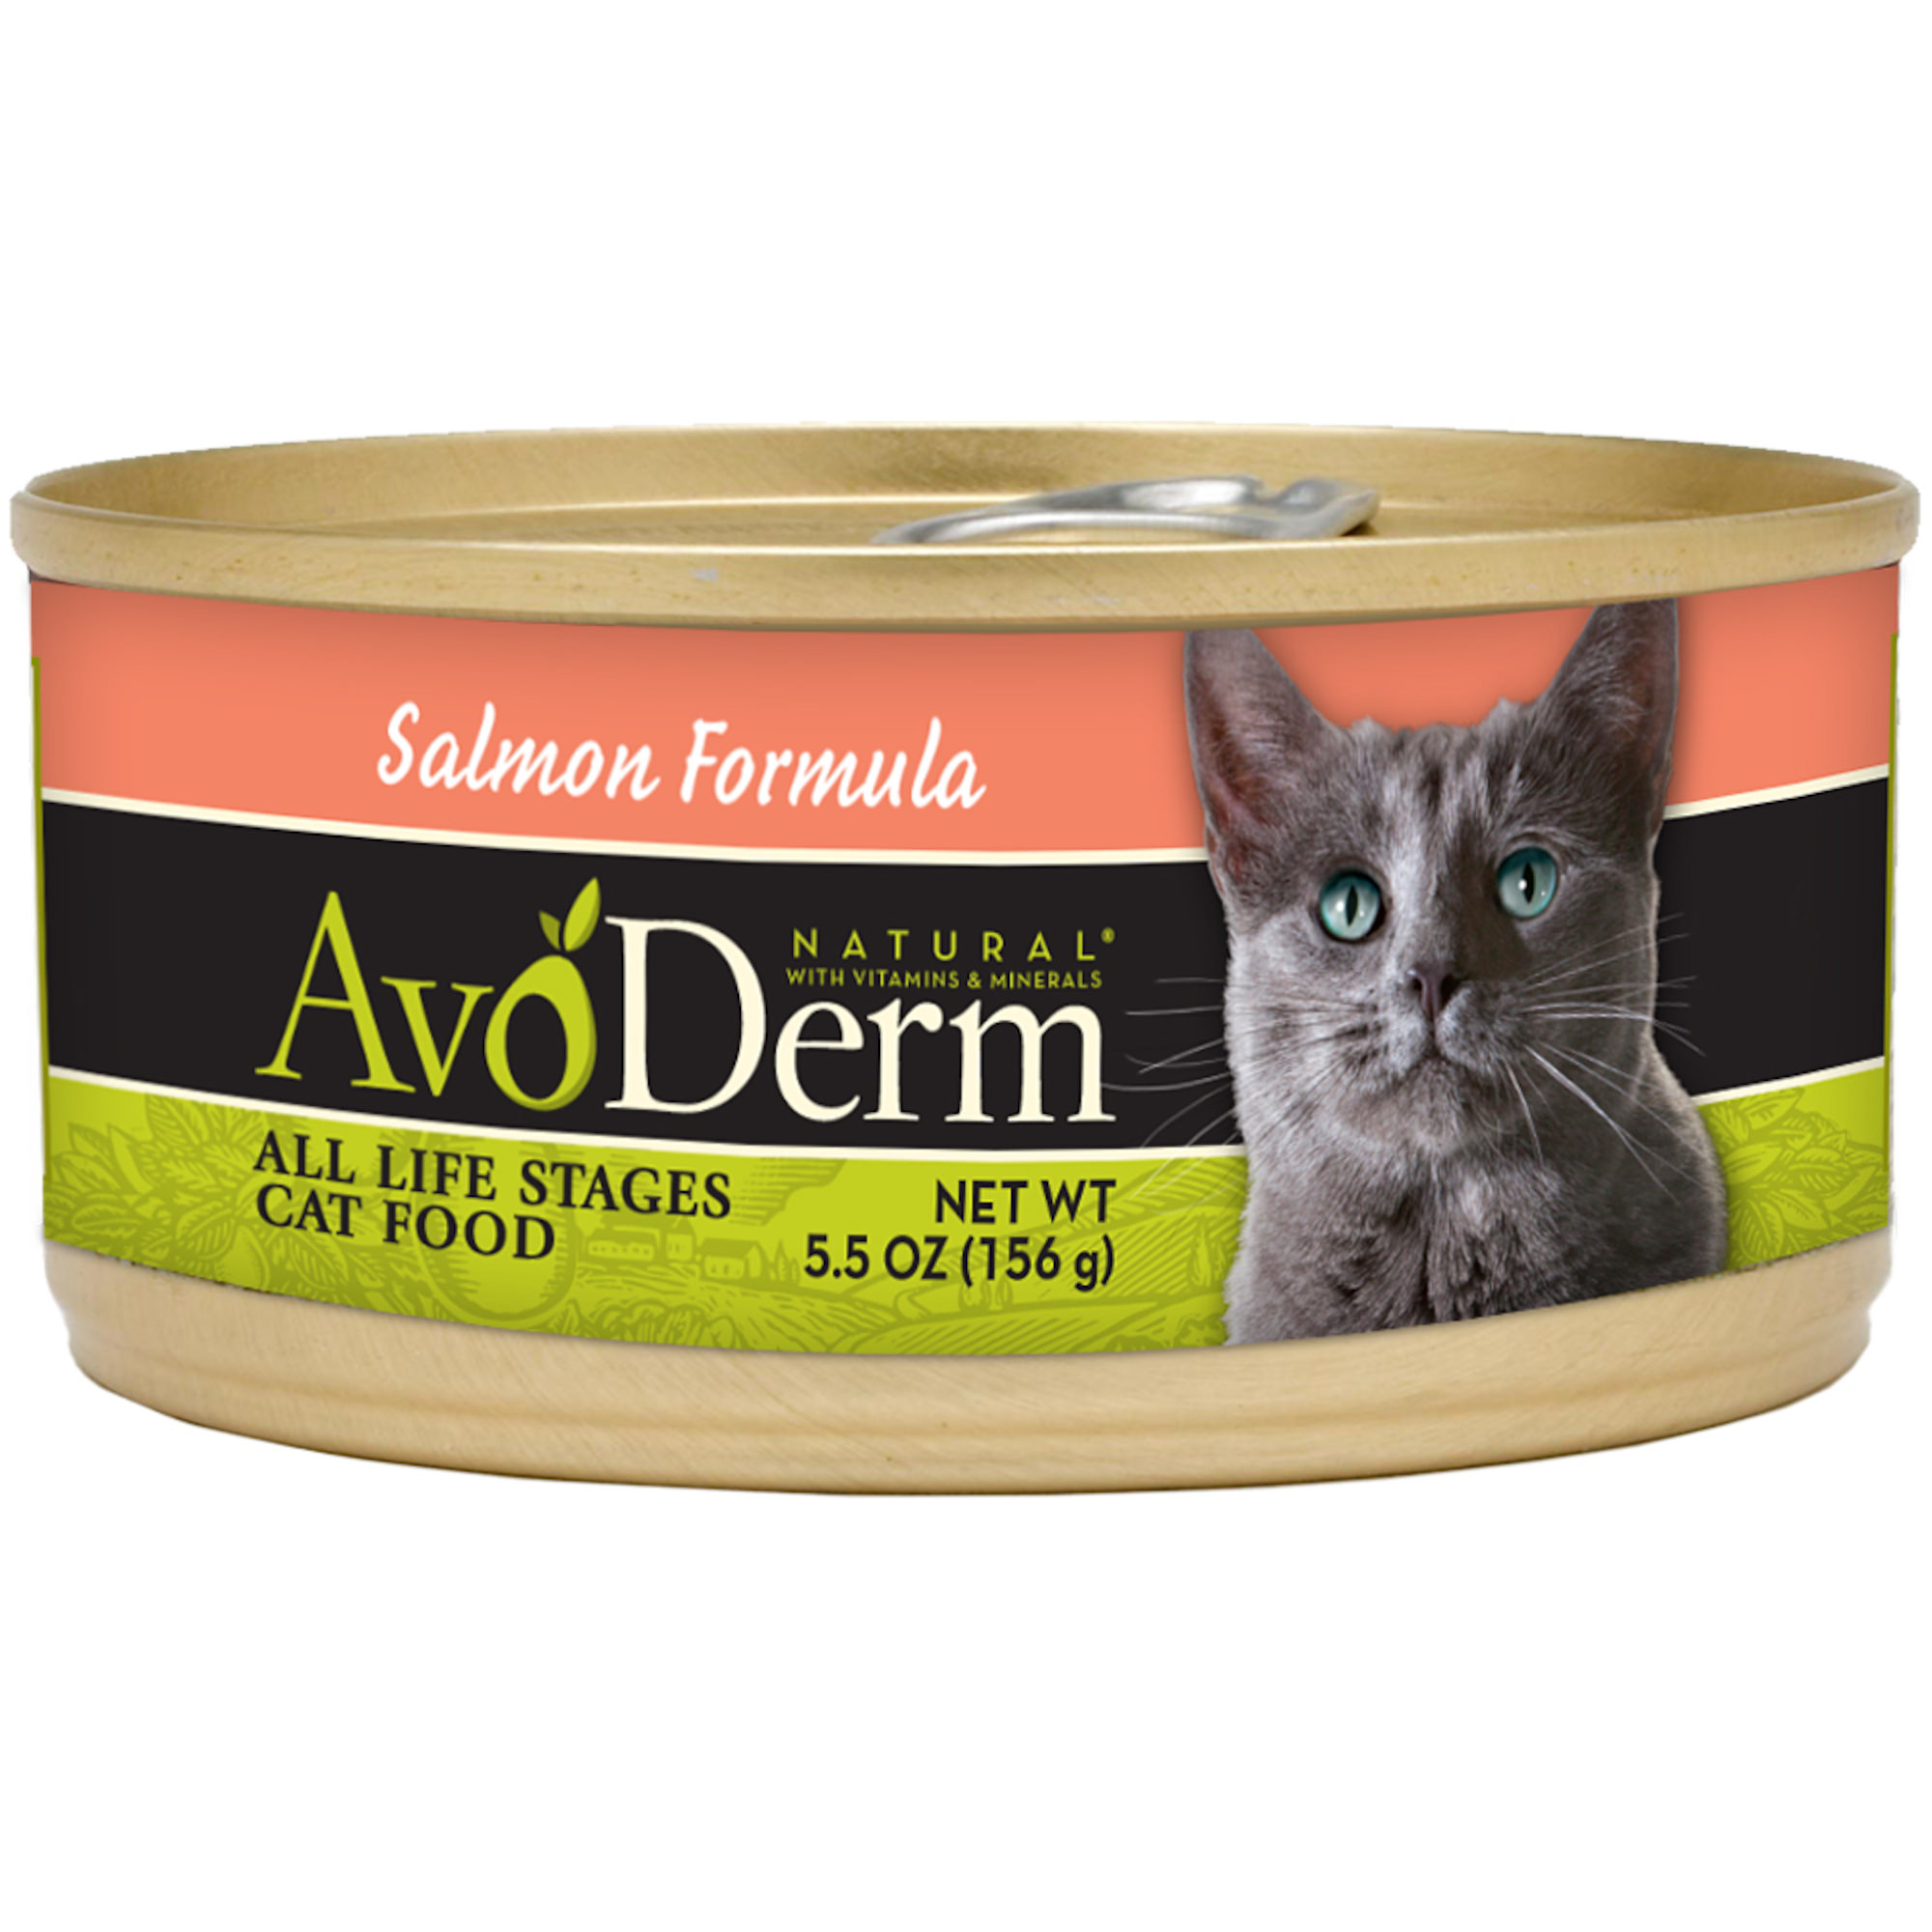 AvoDerm Natural Salmon Formula for Cats, 5.5 Oz. Can